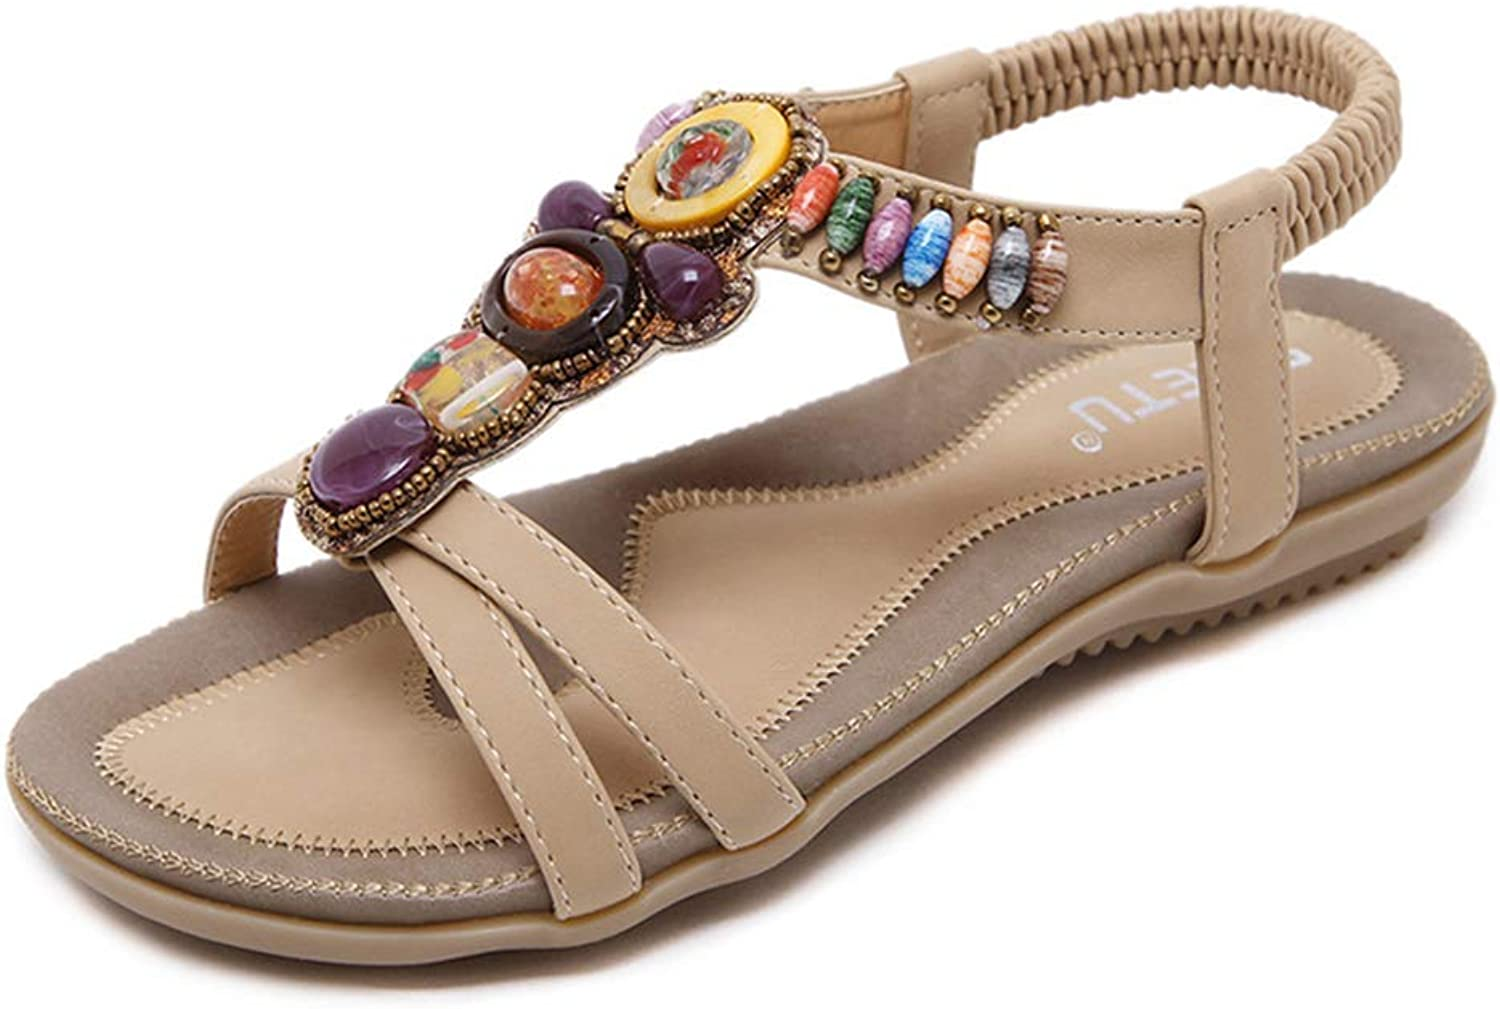 Women's Sandals, National Sandals Bohemian Beads Large Size Flat shoes Open Toe Non-Slip Breathable Lining Women's Sandals,Apricot,40